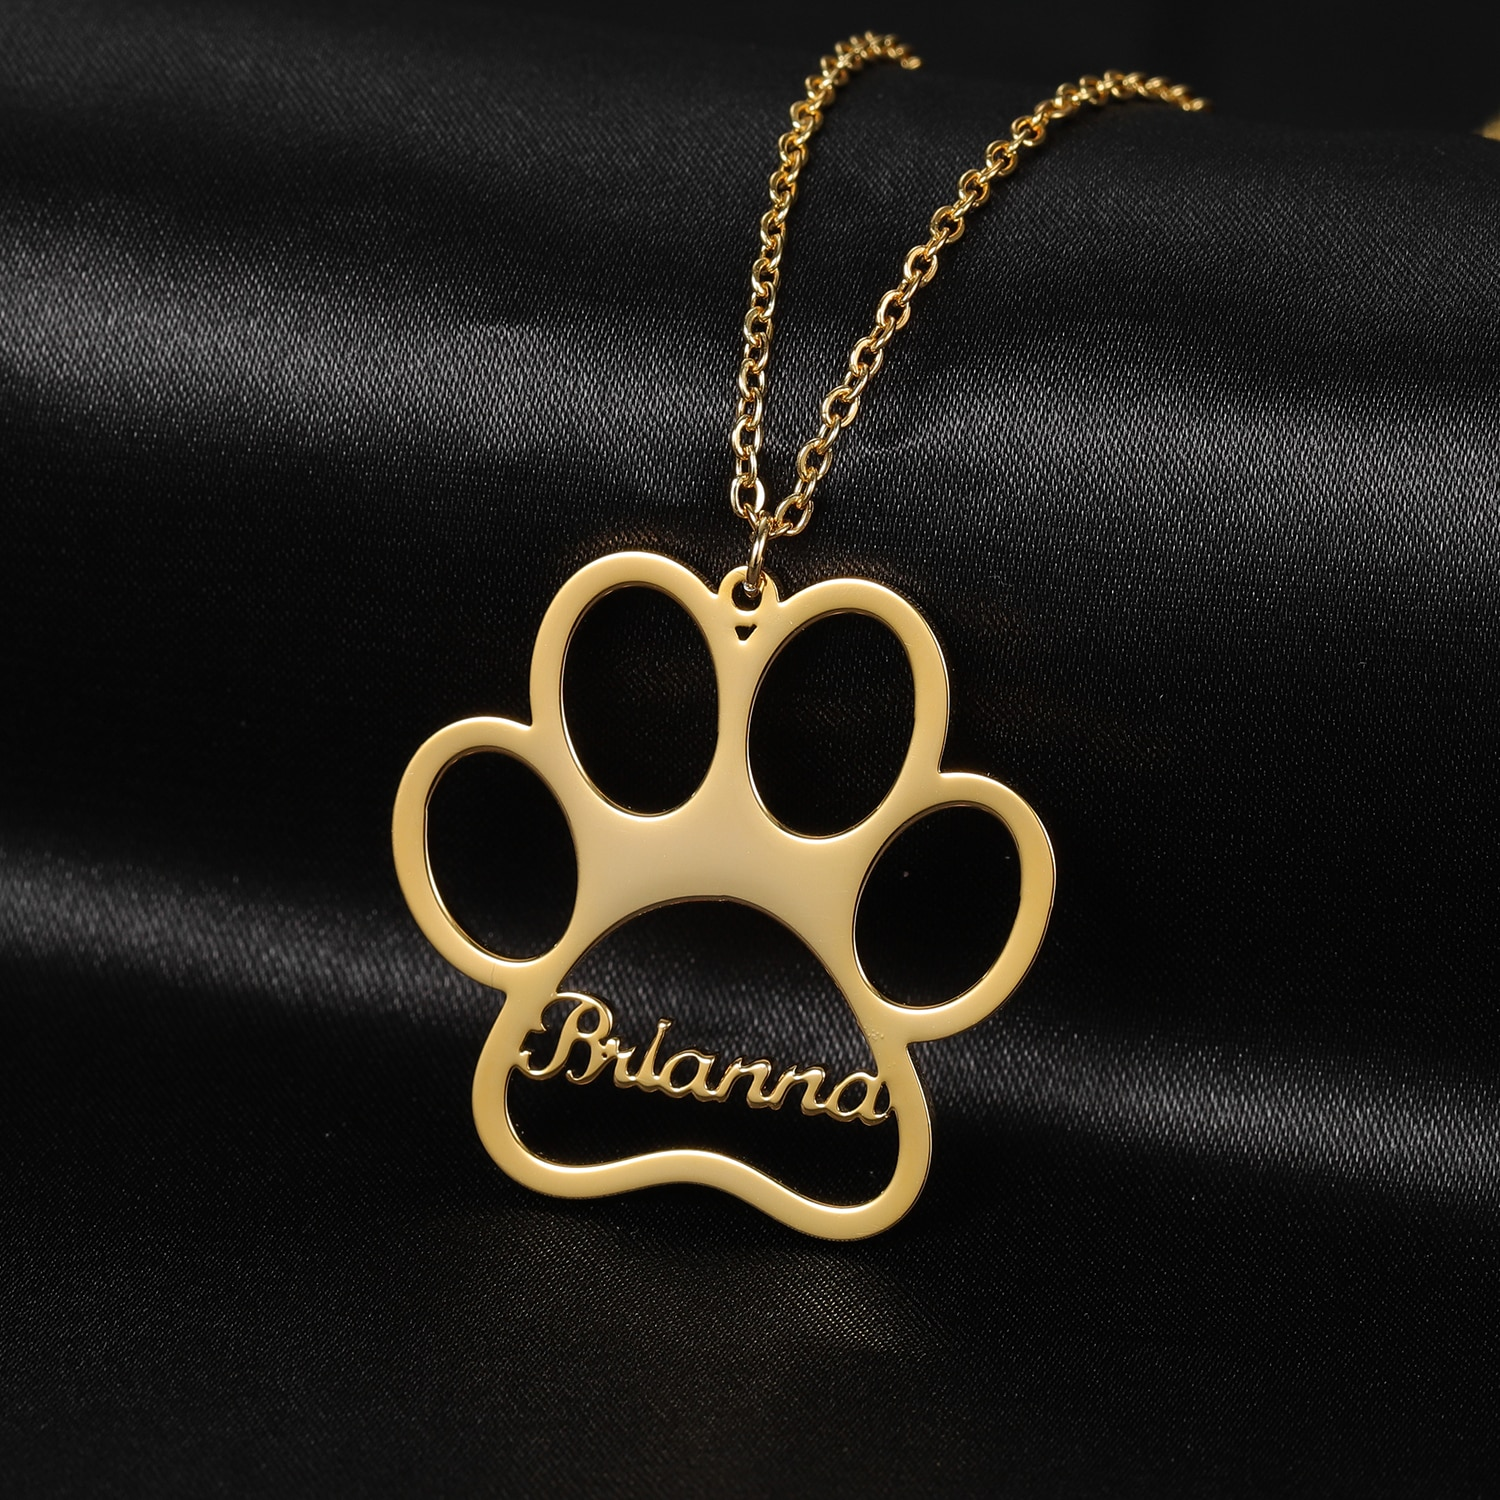 316l stainless steel animal paw charm necklace gold silver tone hollow out lovely cat dog print paw pendant long chain necklace Personalized Name Necklace Dog Paw Necklace Paw Print Initial Bone Pet Charm Personalized Dog Necklace Jewelry Gift